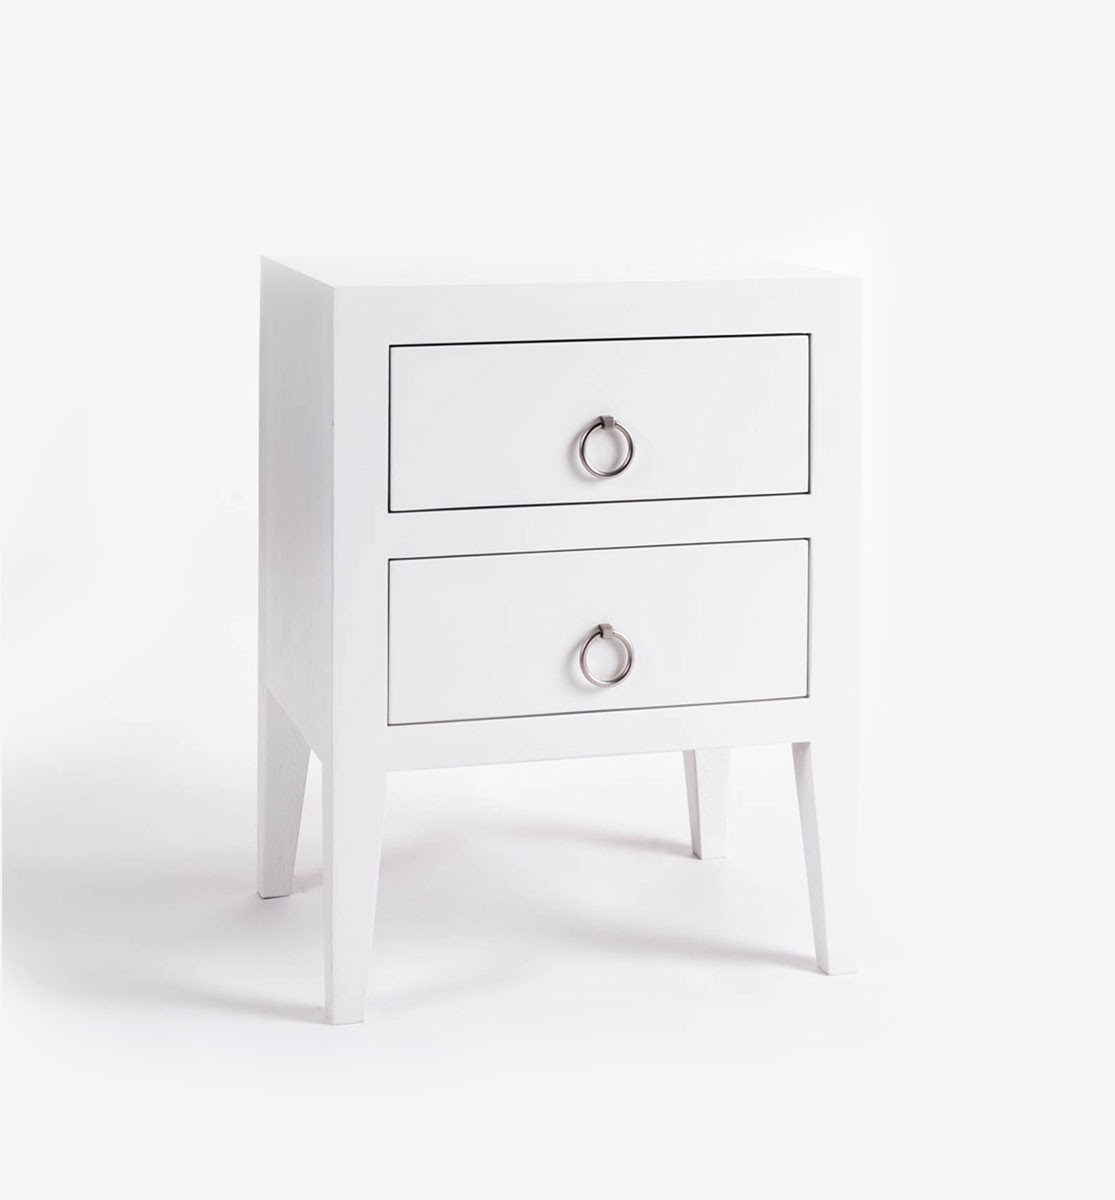 ESSENTIAL DRAWER STORE BEDSIDE TABLE